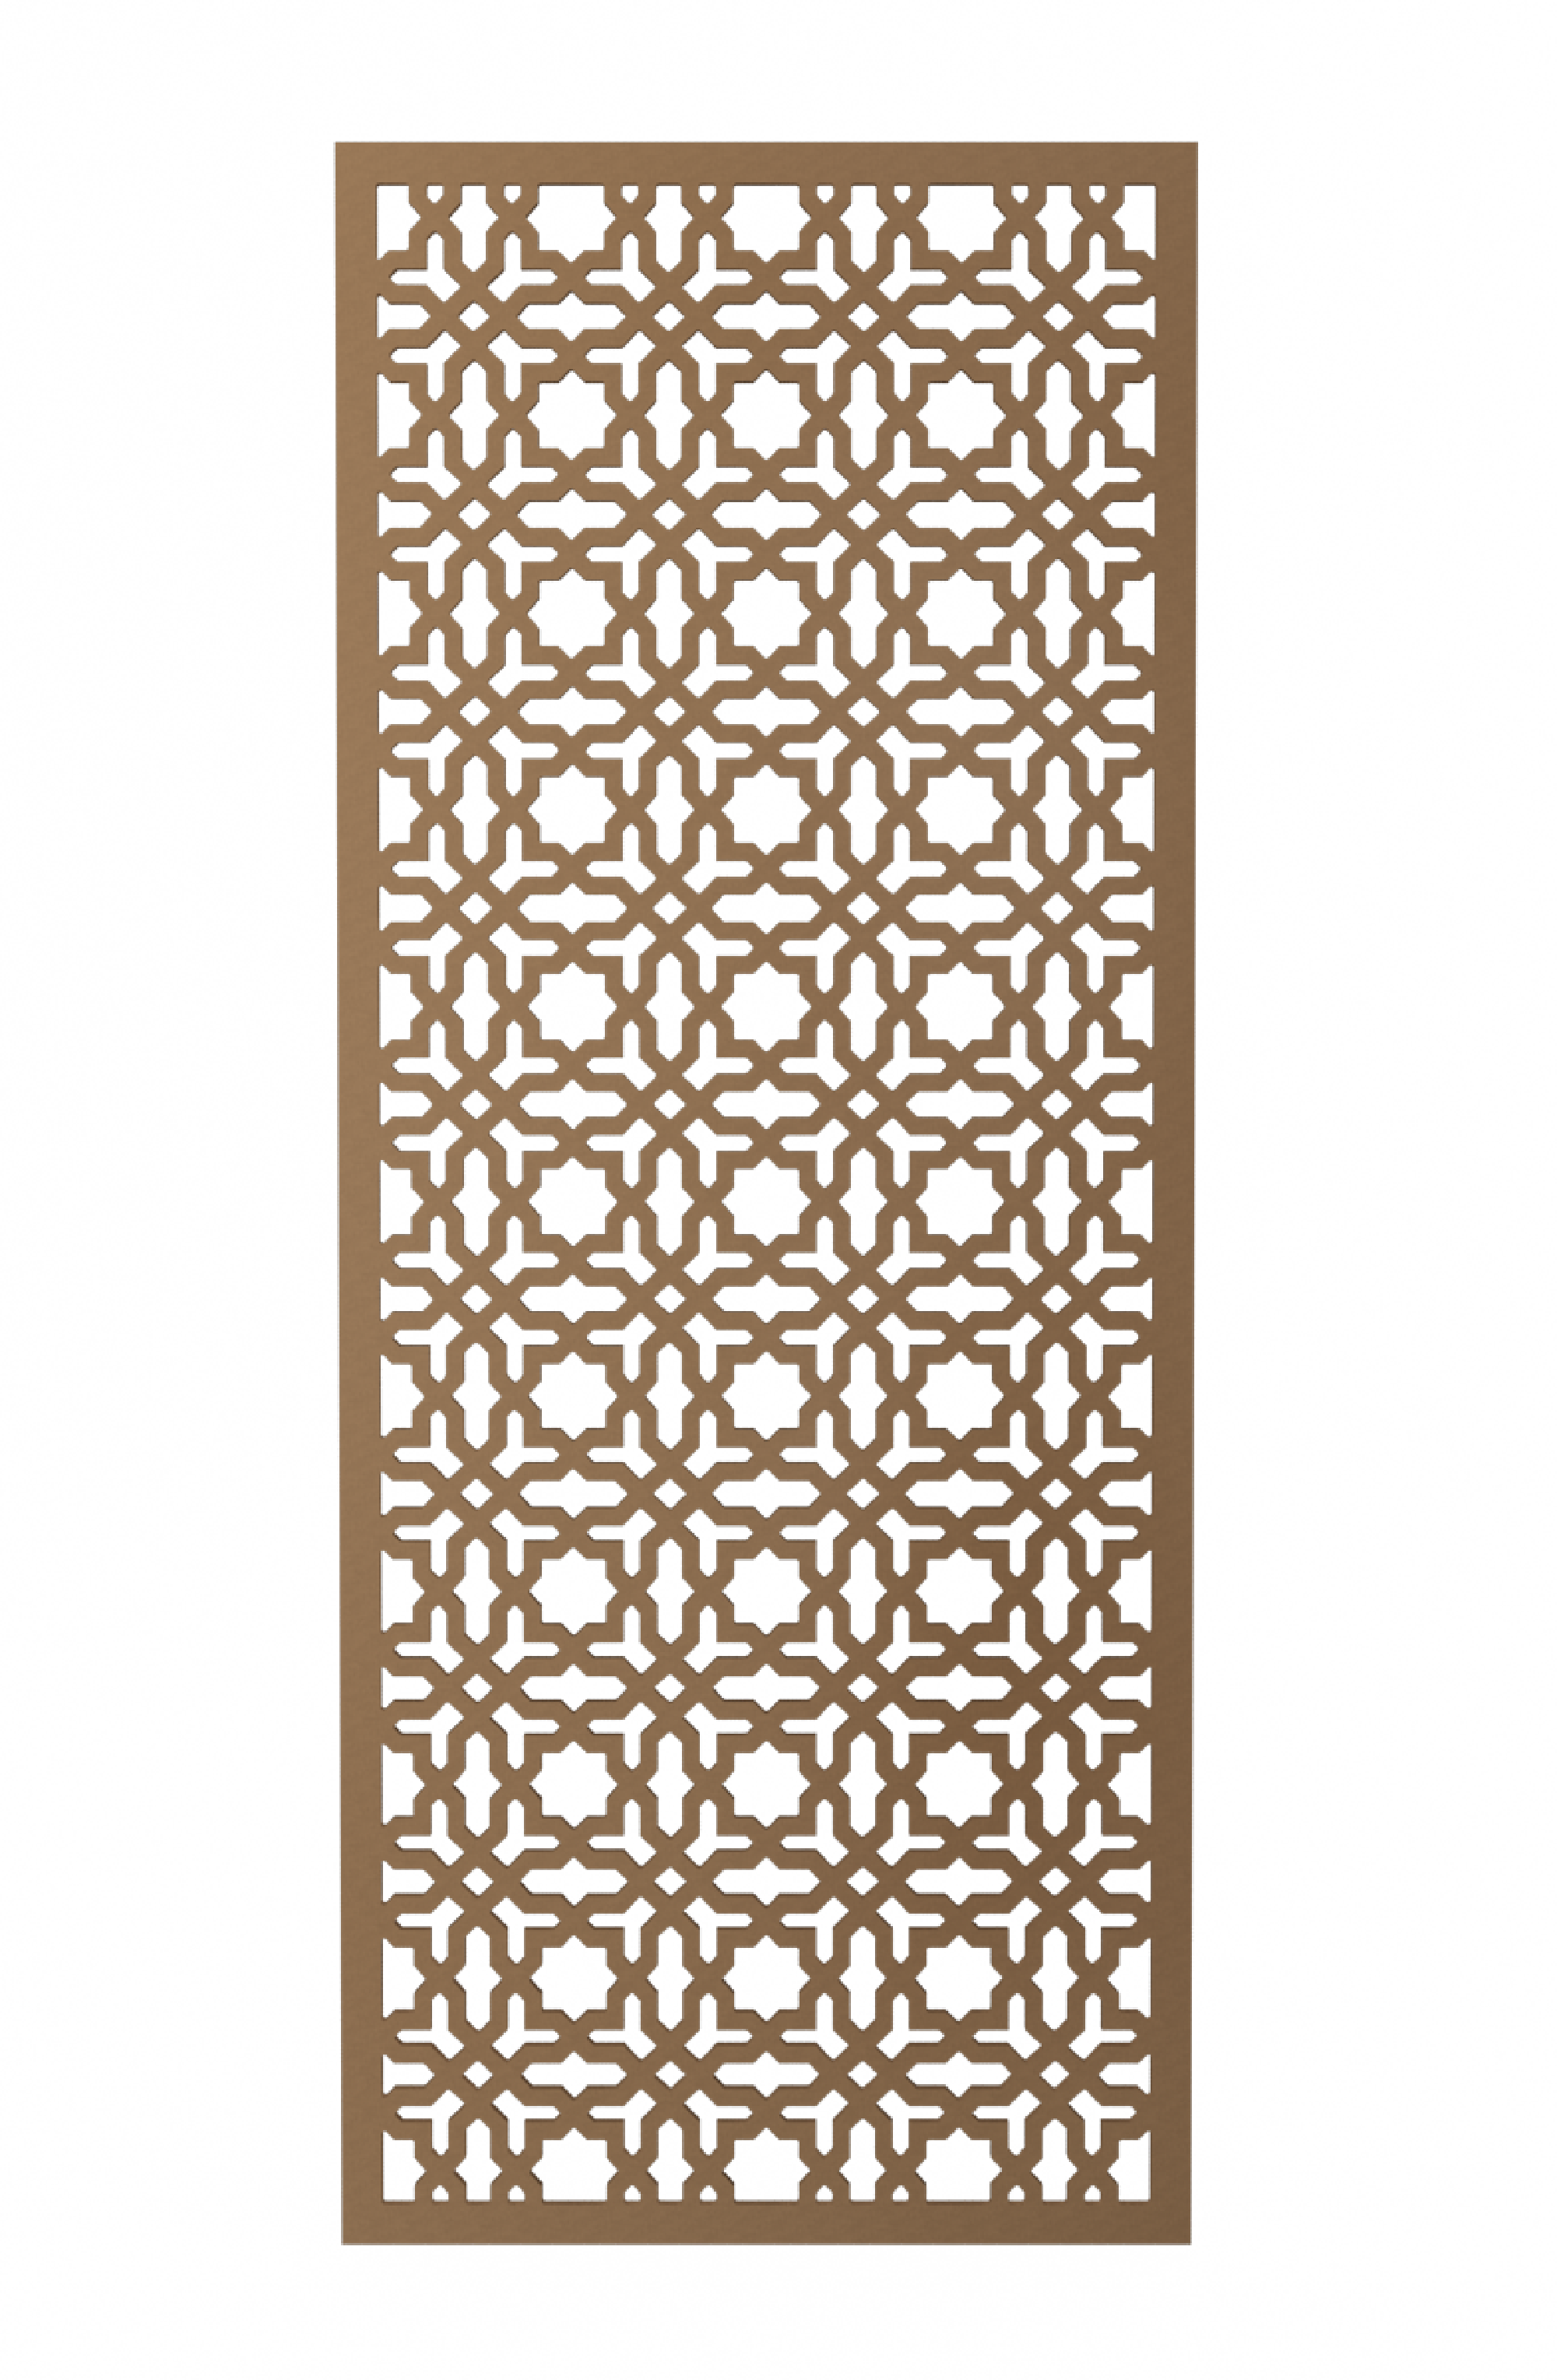 Room Dividers Room Partitions Room Divider Screen Portable Room Dividers Panel Room Divider Decorative Room Divider Bedroom Dividers